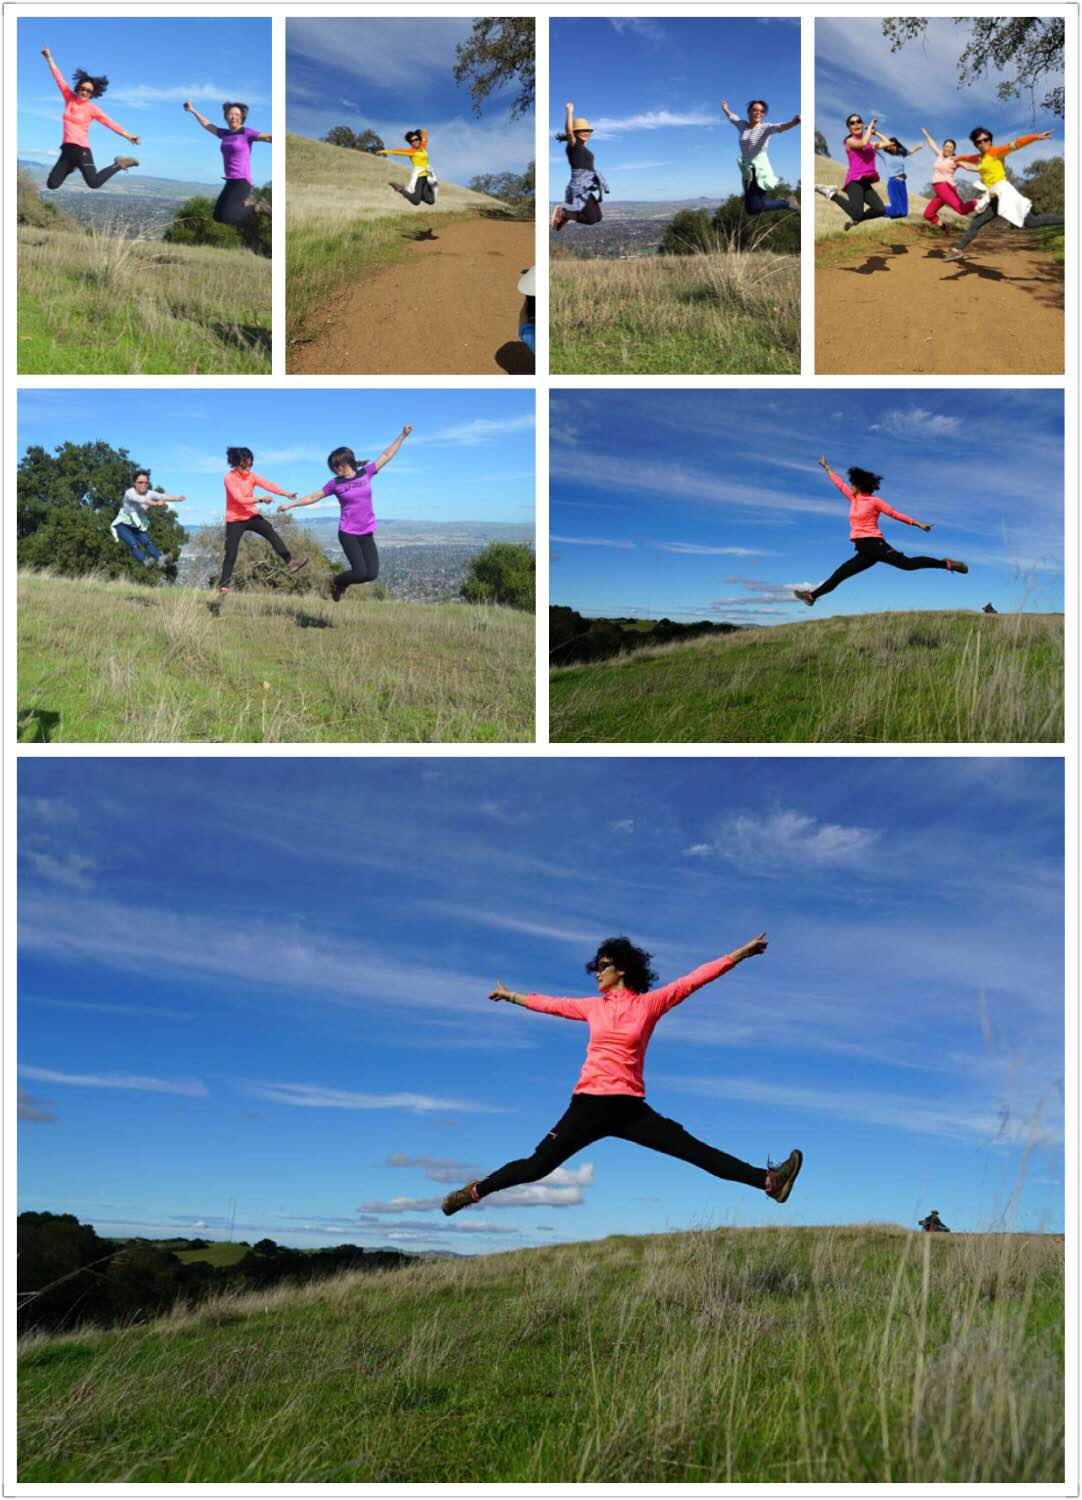 pleasanton-ridge-reginal-park_jump